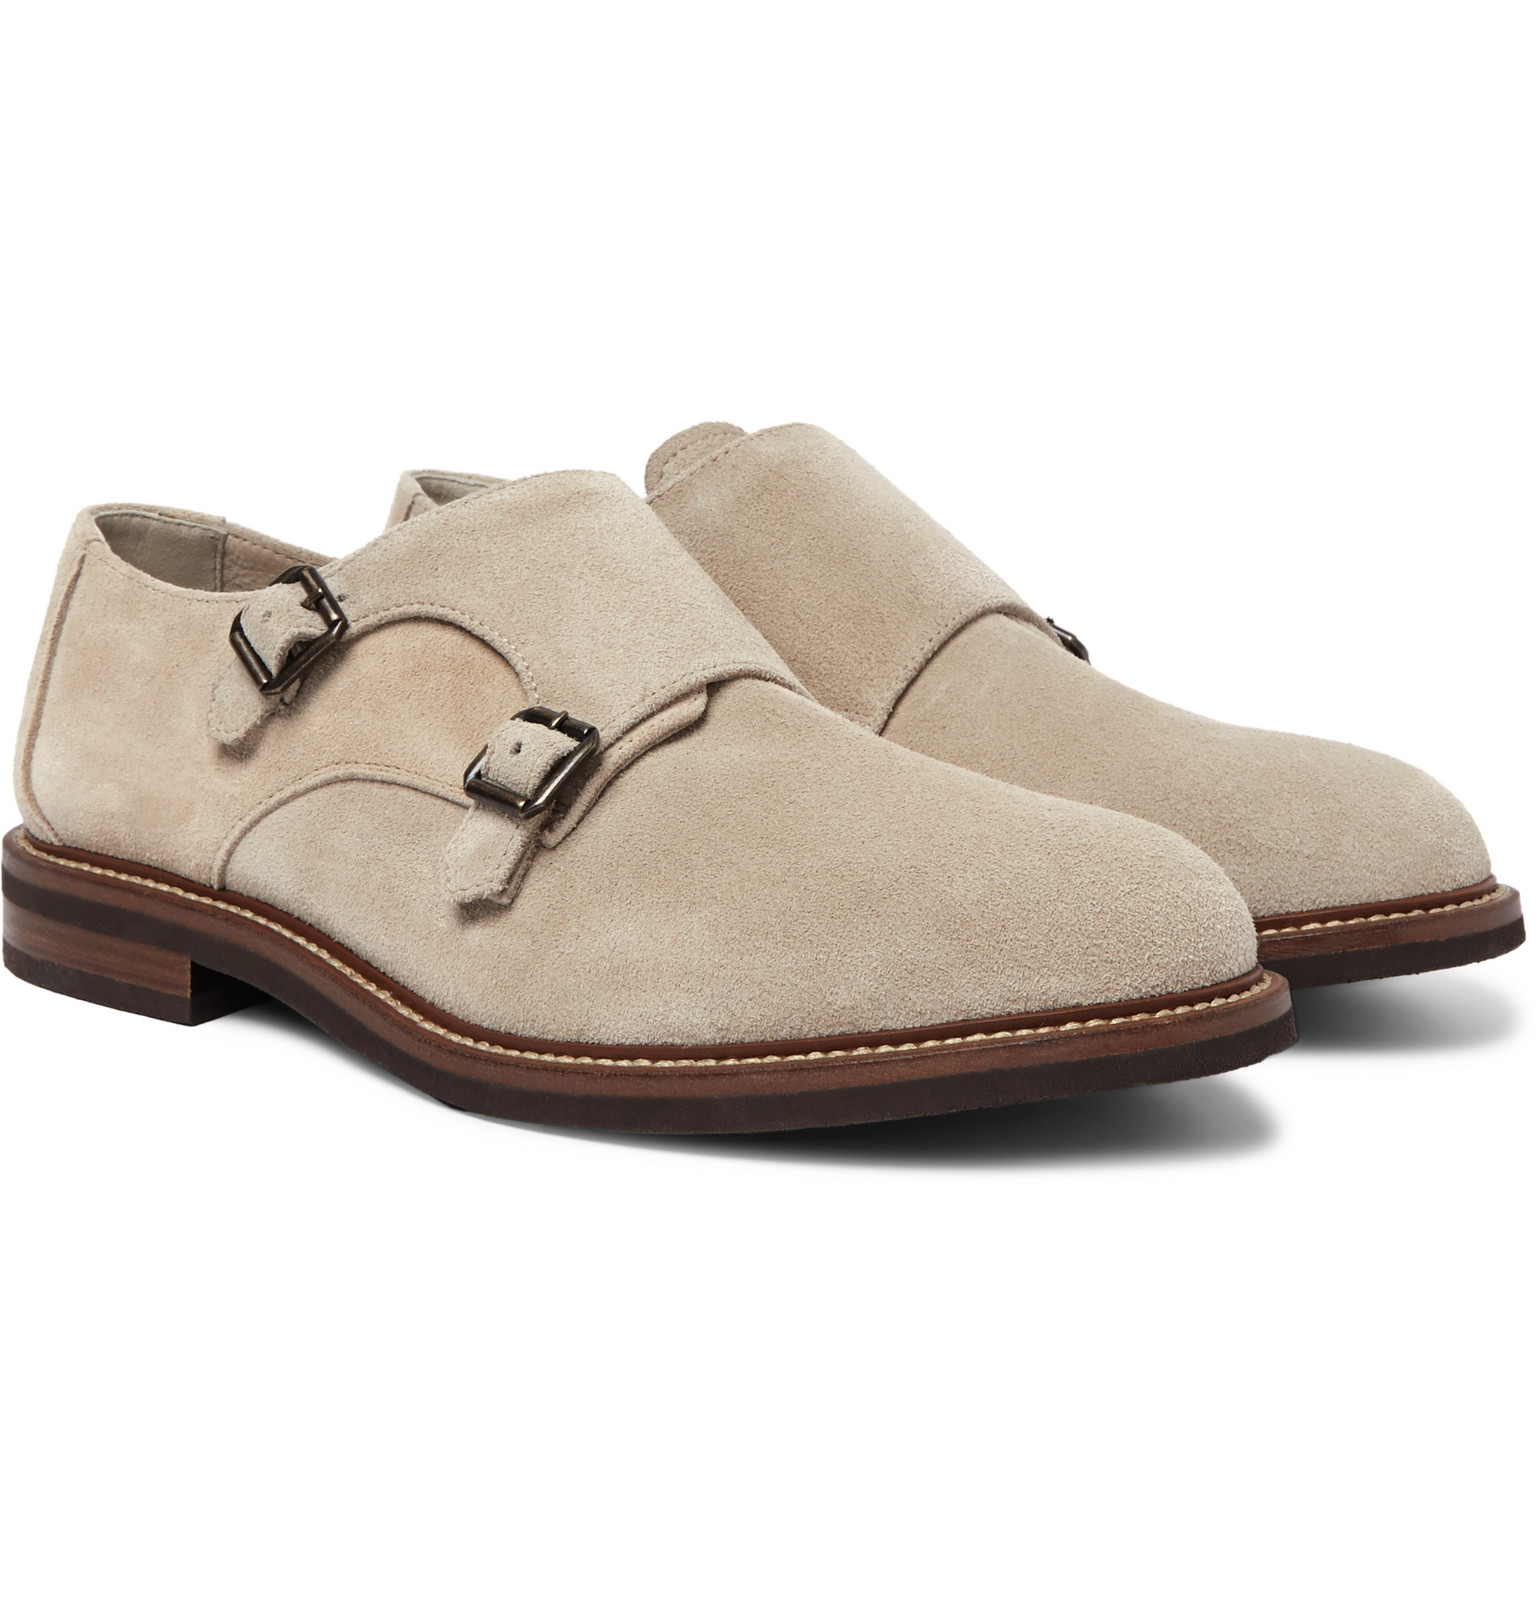 Suede Monk-Strap Shoes by Brunello